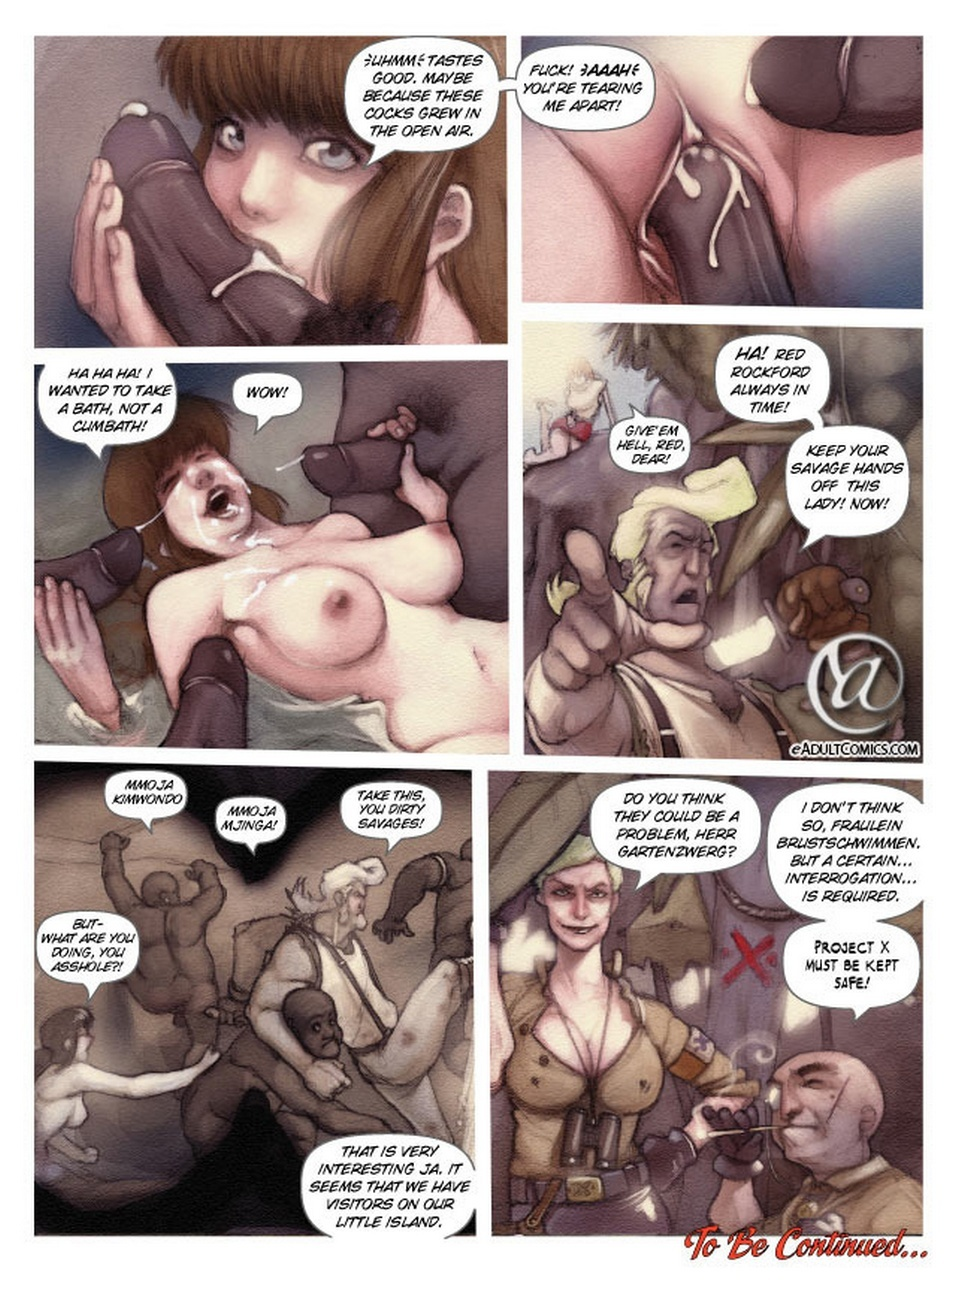 Becky Valient 1 – Stuck Without Luck Sex Comic